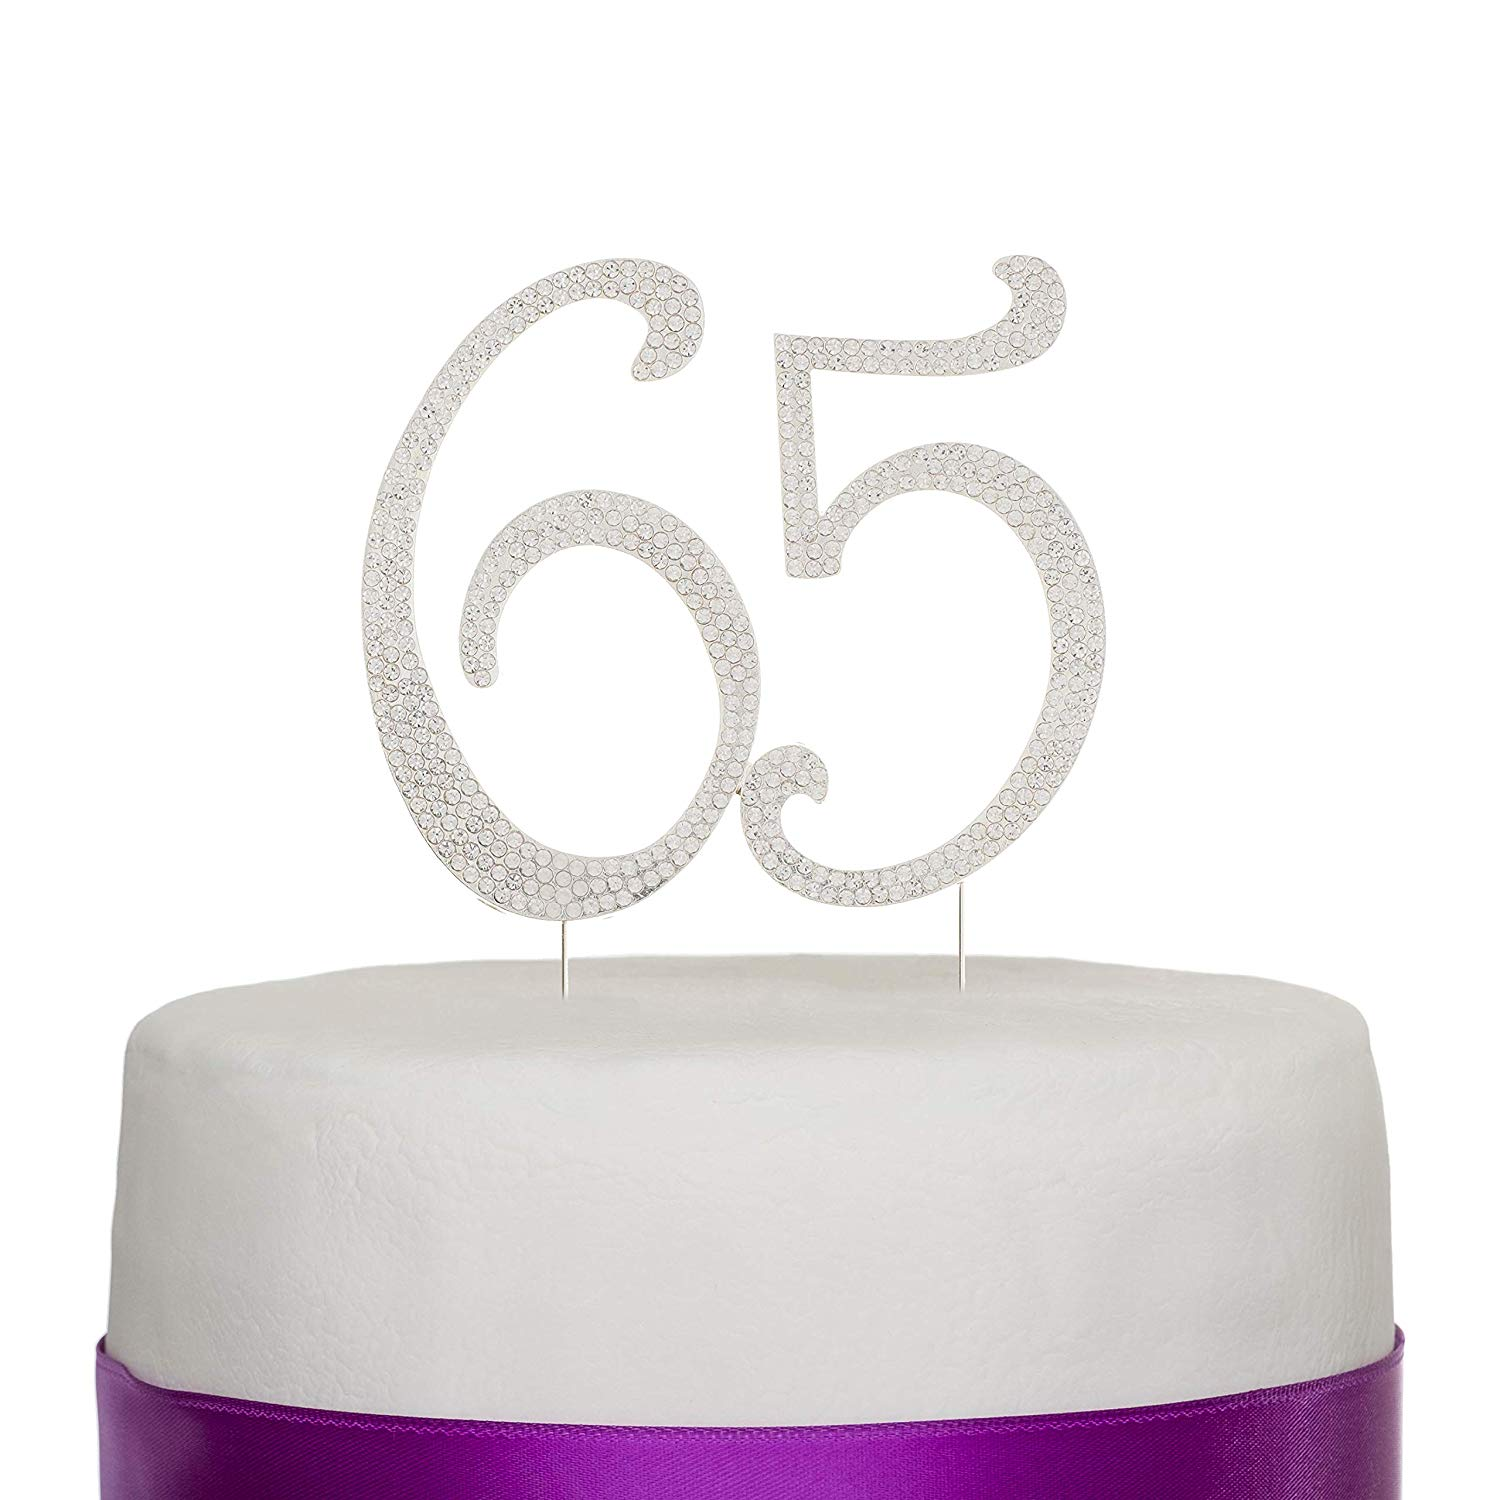 Pleasing Ella Celebration 65 Cake Topper For 65Th Birthday Party Personalised Birthday Cards Cominlily Jamesorg